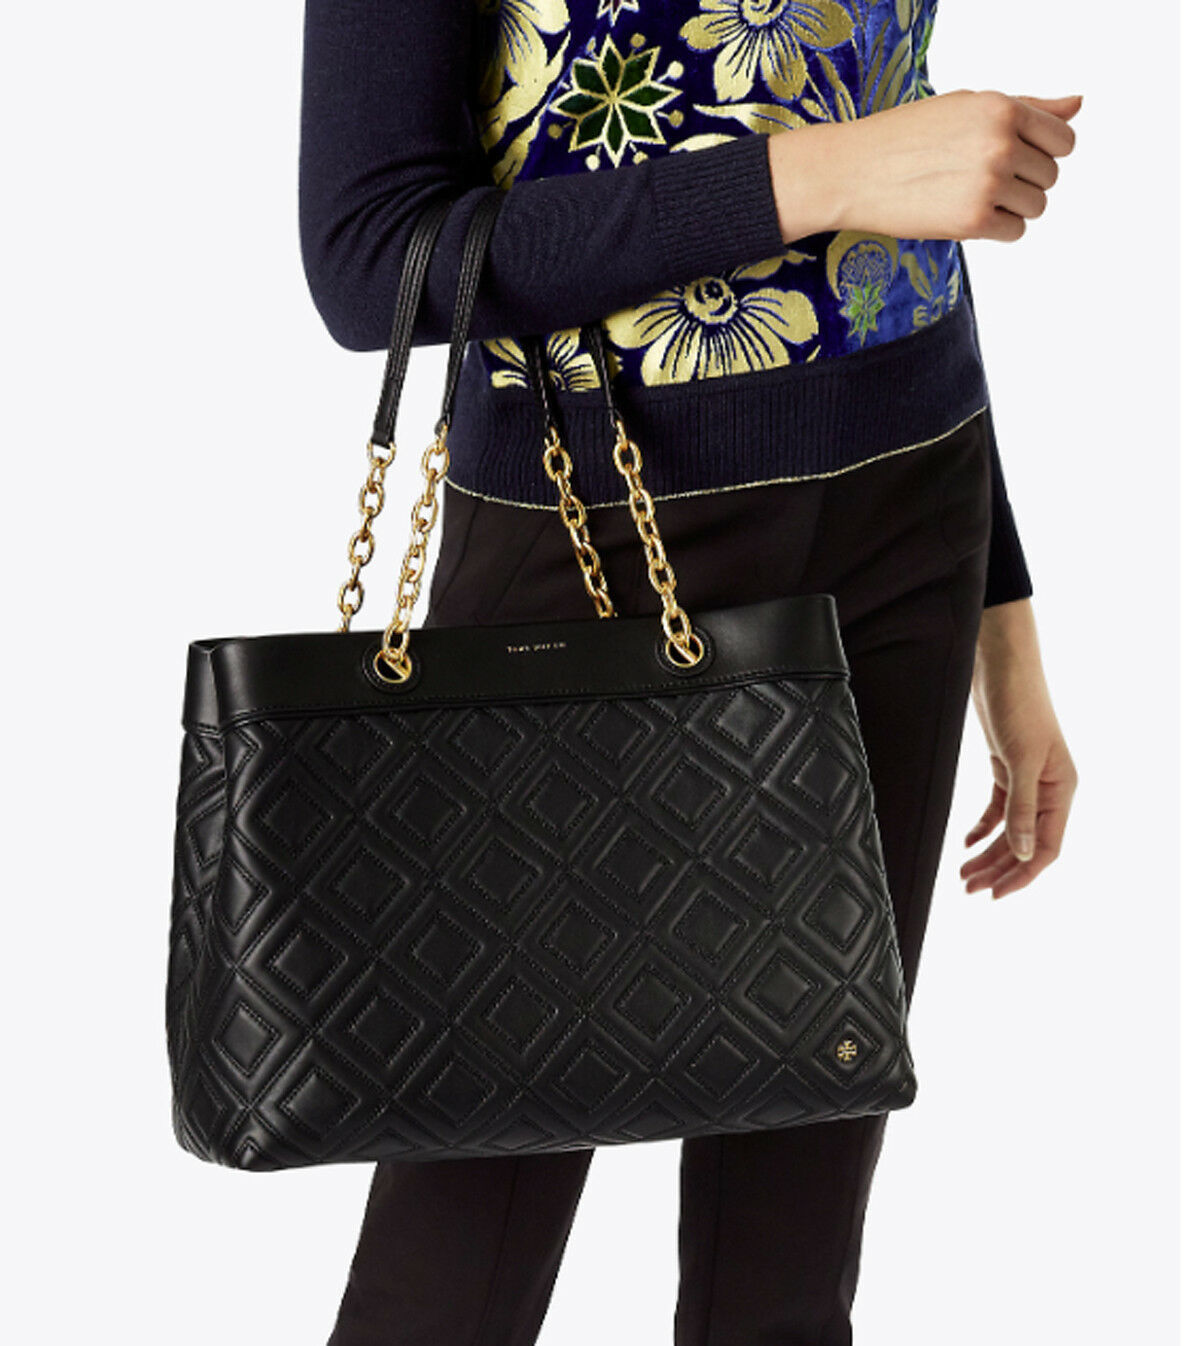 NWT Tory Burch Black Fleming Triple Compartment Shoulder Tote image 12